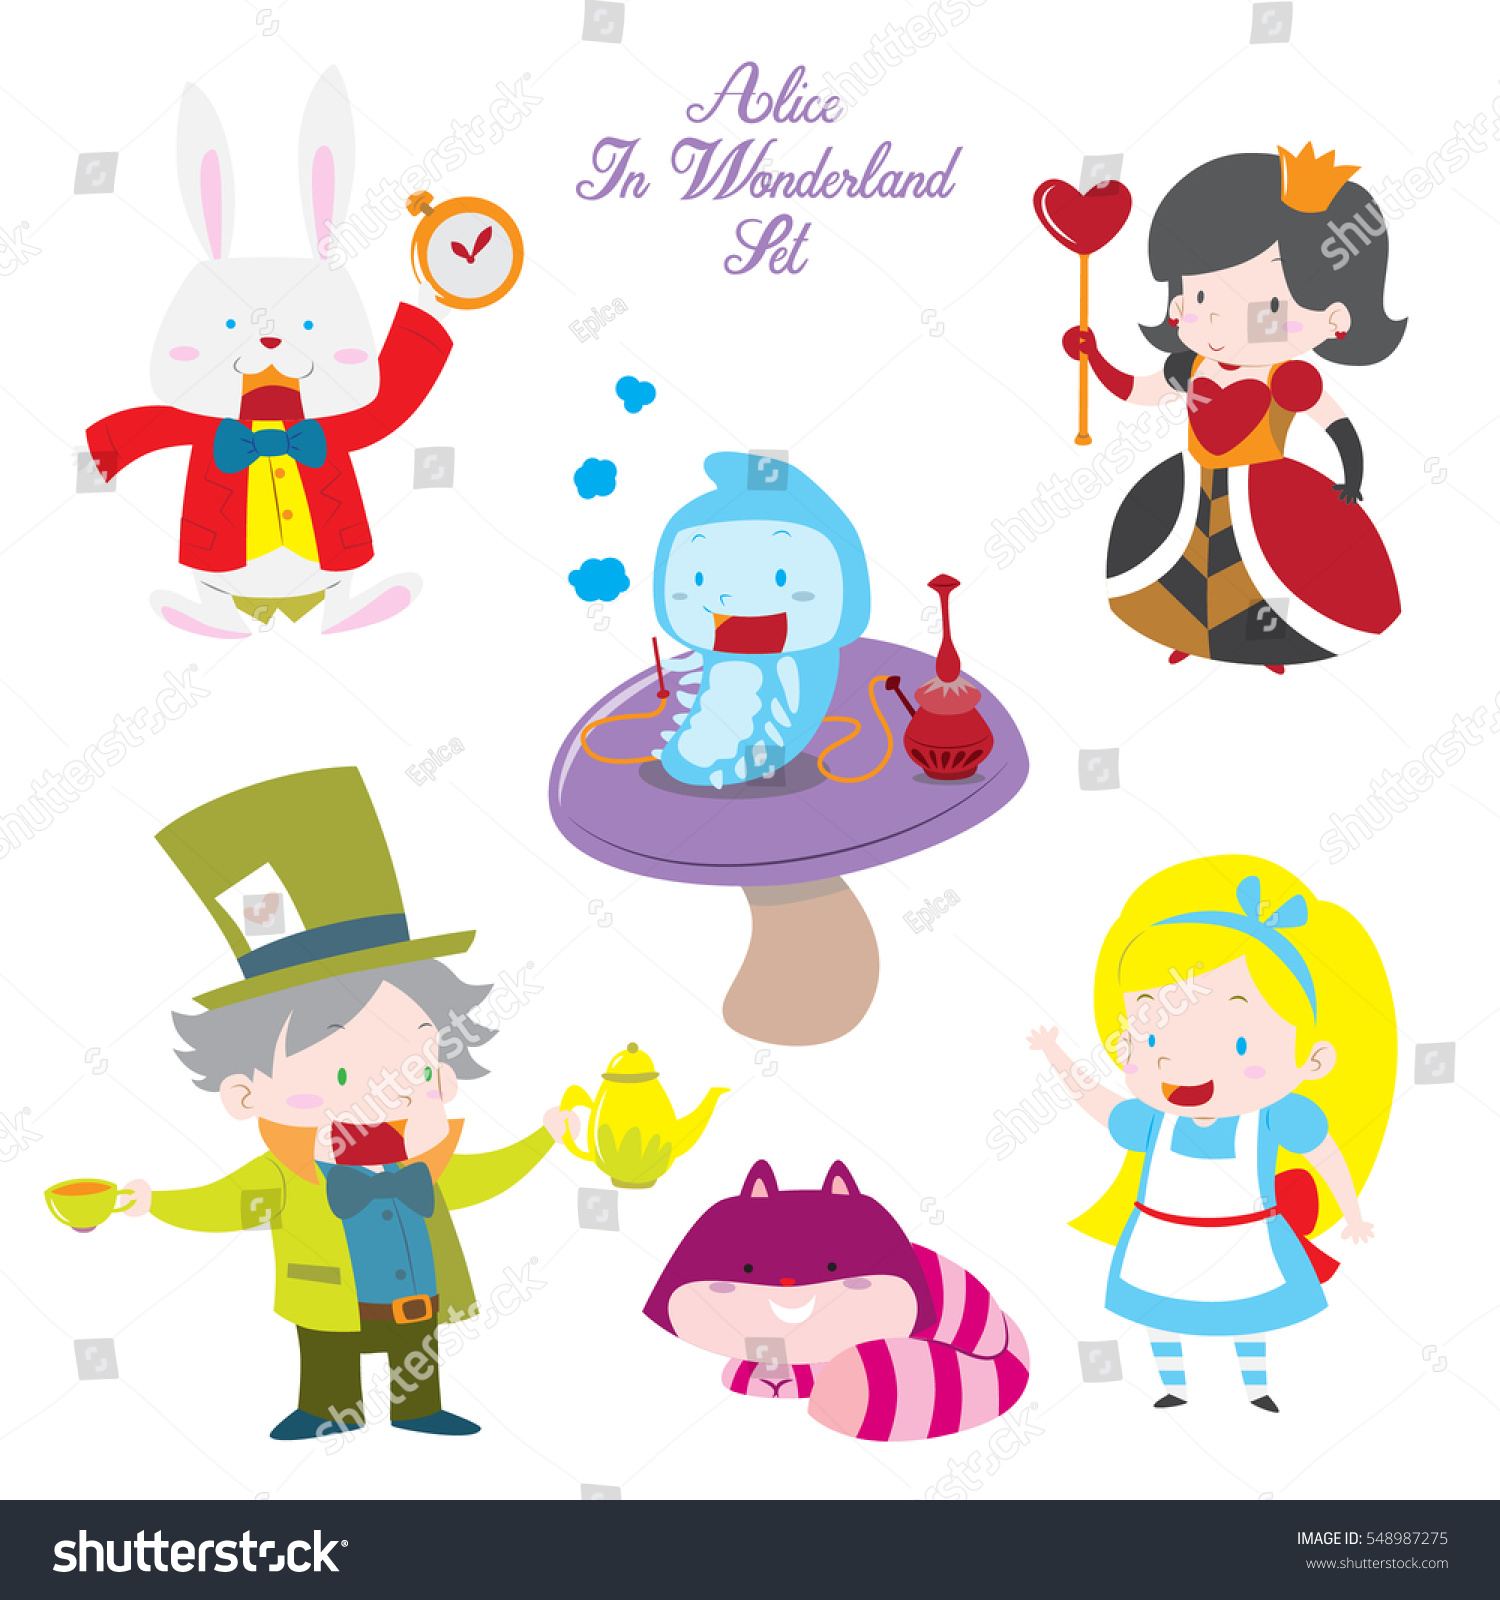 Alice In Wonderland Story Characters